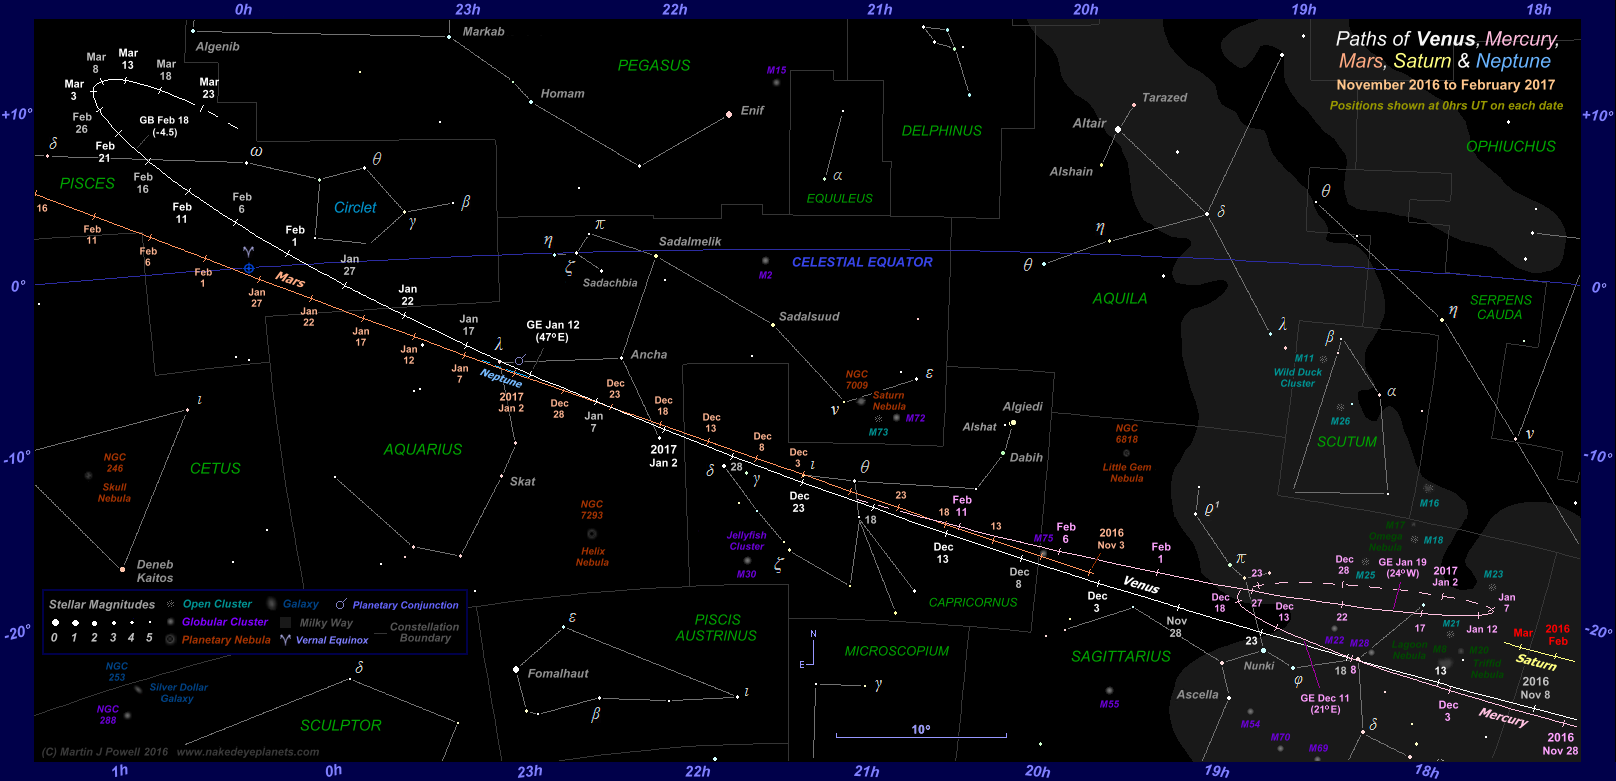 Star chart showing the paths of Venus, Mercury, Mars, Saturn and Neptune through the zodiac constellations for the latter part of Venus' evening apparition in 2016-17 (Copyright Martin J Powell 2016)